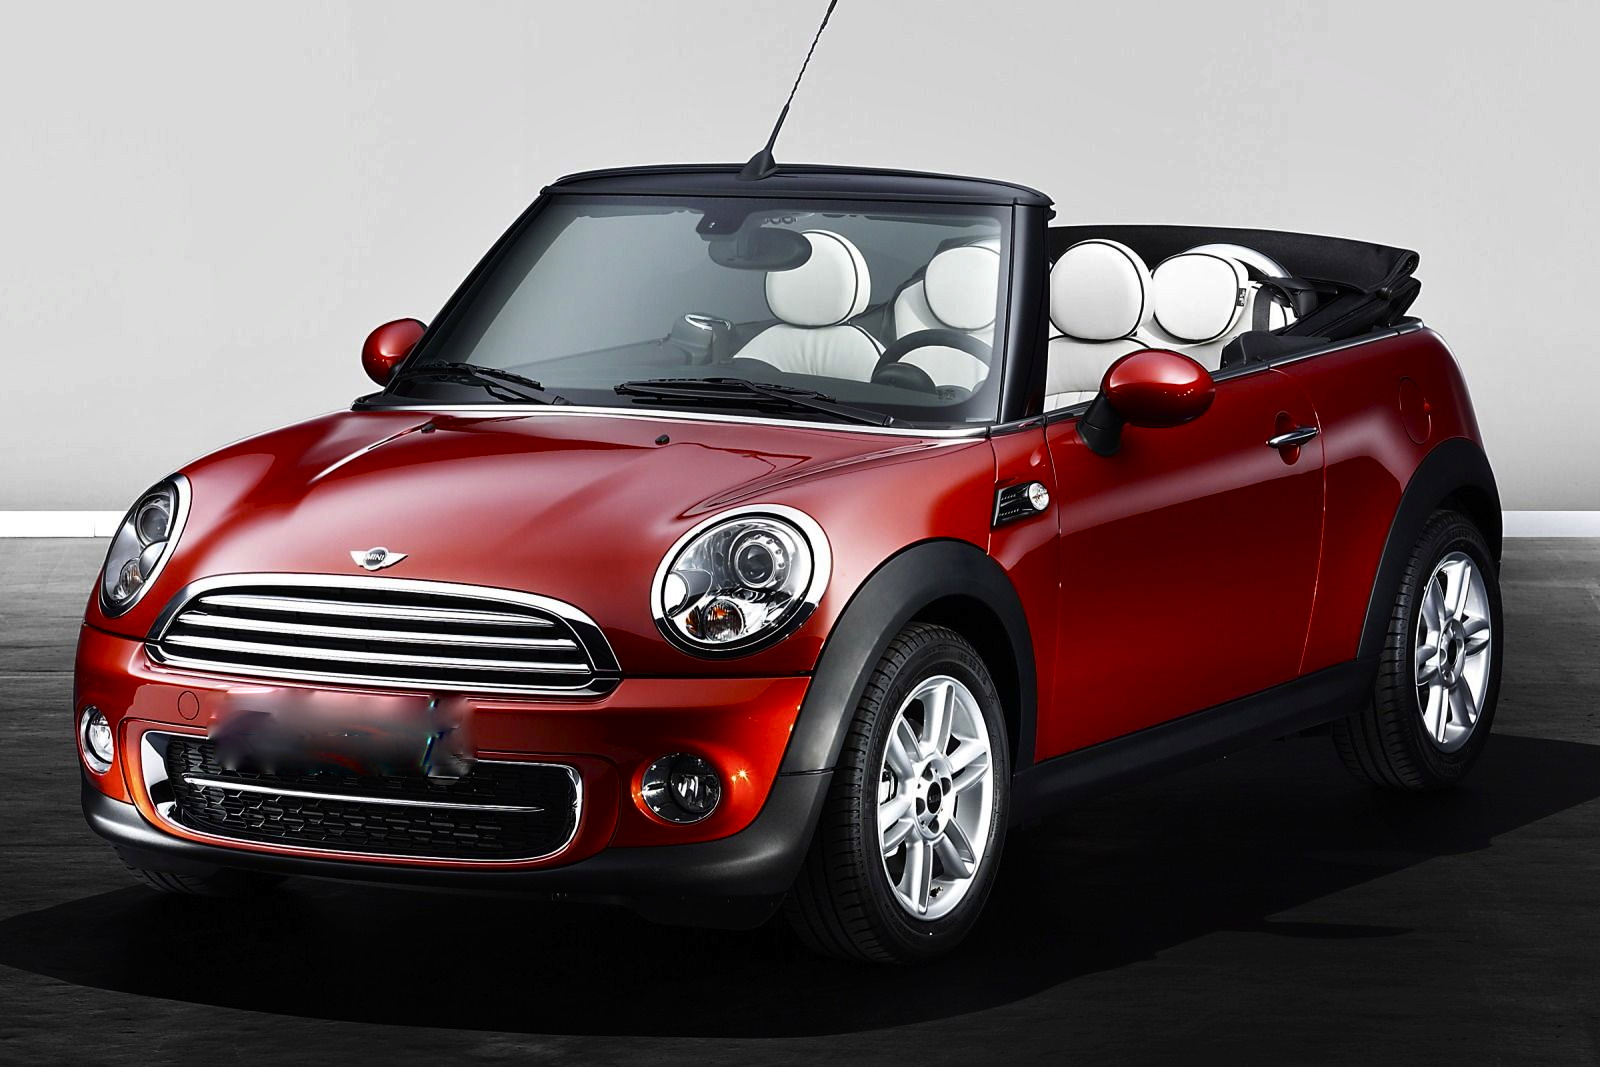 vw beetle turbo cabrio diamanz cabrio rental. Black Bedroom Furniture Sets. Home Design Ideas